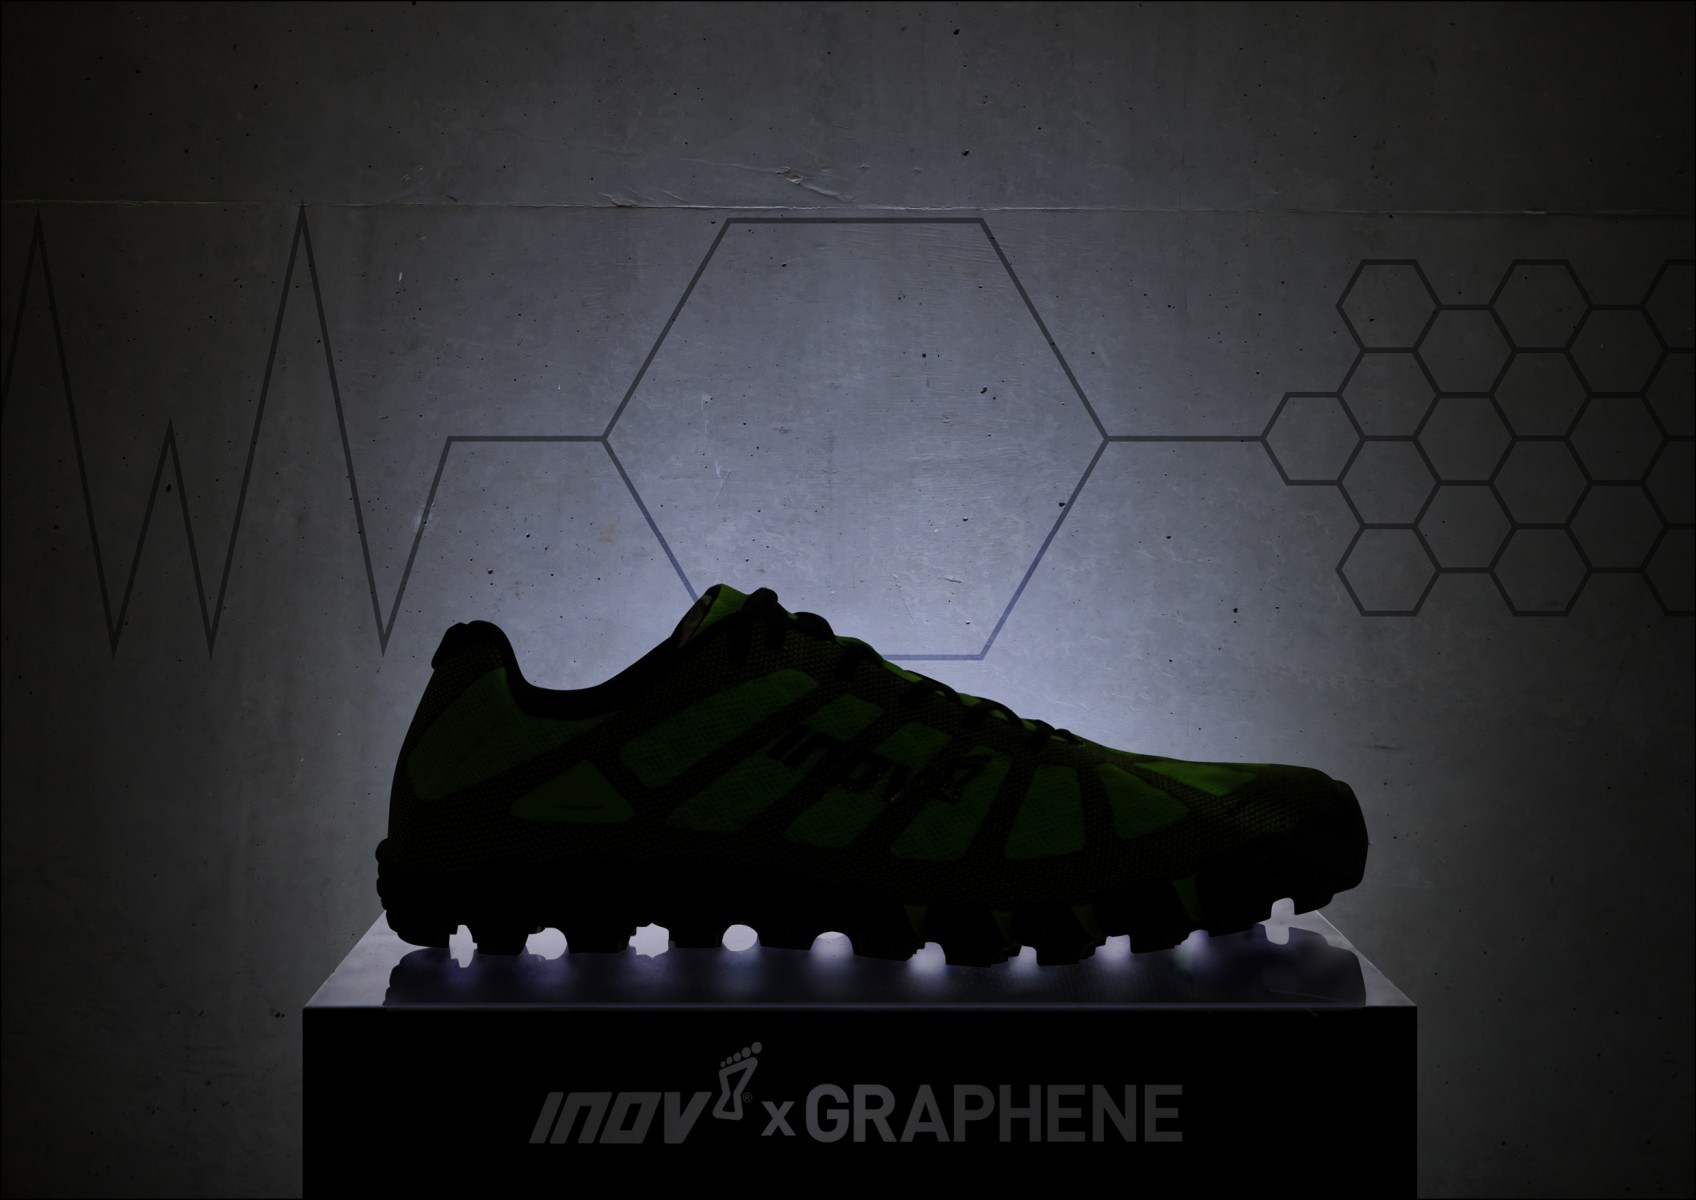 Graphene running shoes will hit the market next year